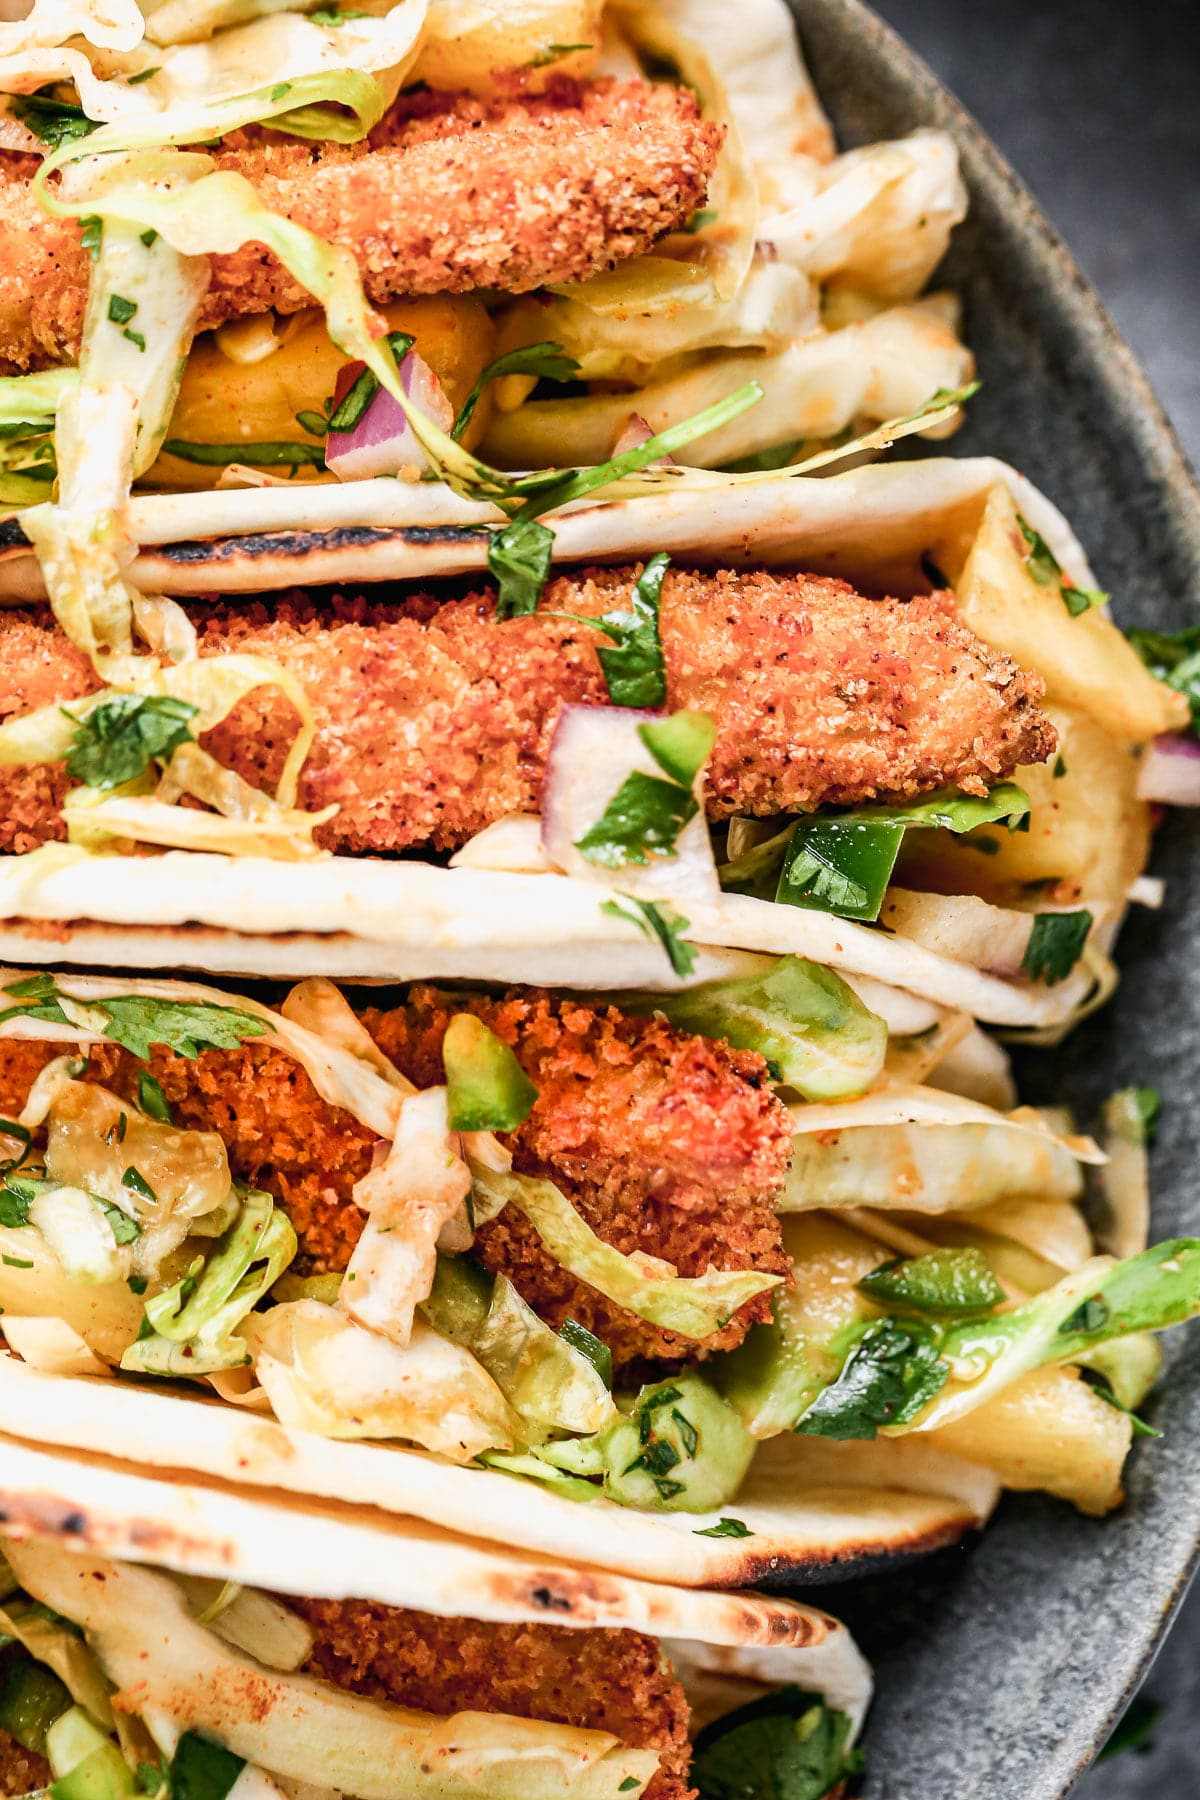 Never have a soggy fish taco again! Our Air Fryer Fish Tacos produce the CRISPIEST breaded fish without all the fat and calories and WITH all the flavor. We nestle the crunchy barramundiin charred street taco tortillas, top with a quick pineapple slaw, and a fresh squeeze of lime juice.